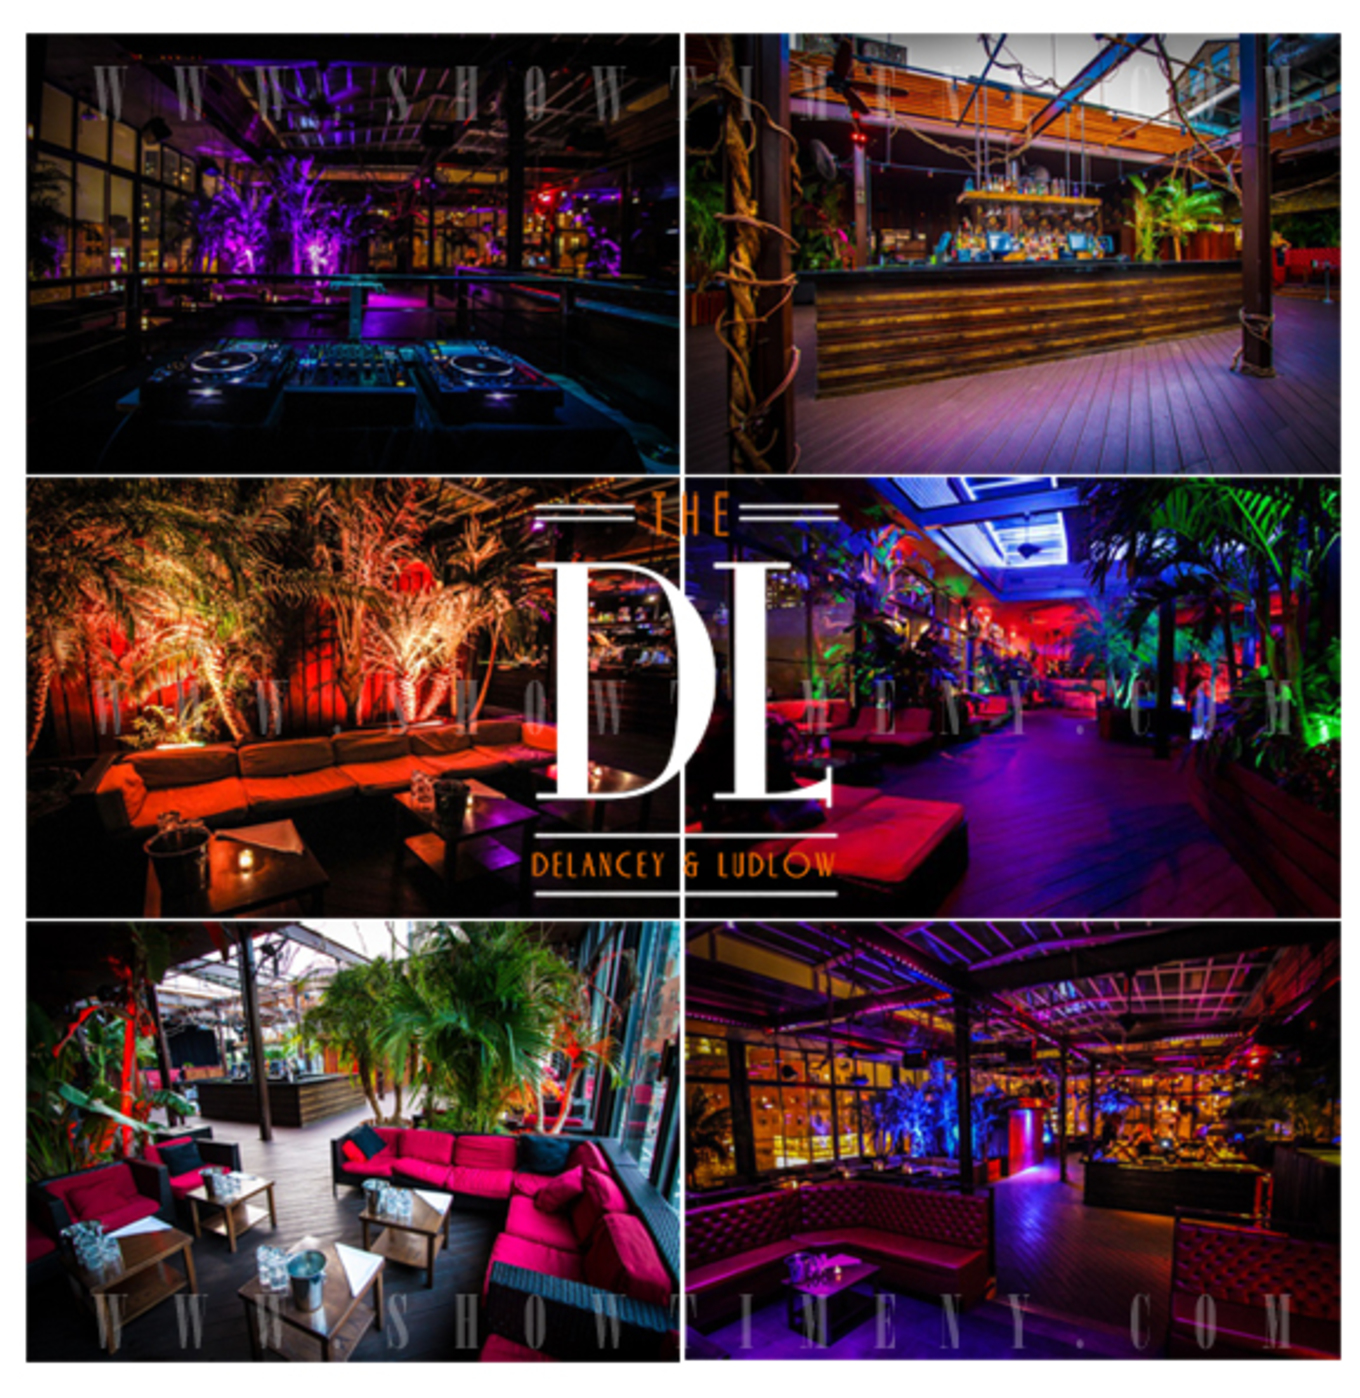 dl nyc, dl nyc guest list, dl nyc bottle service, nightclubs nyc